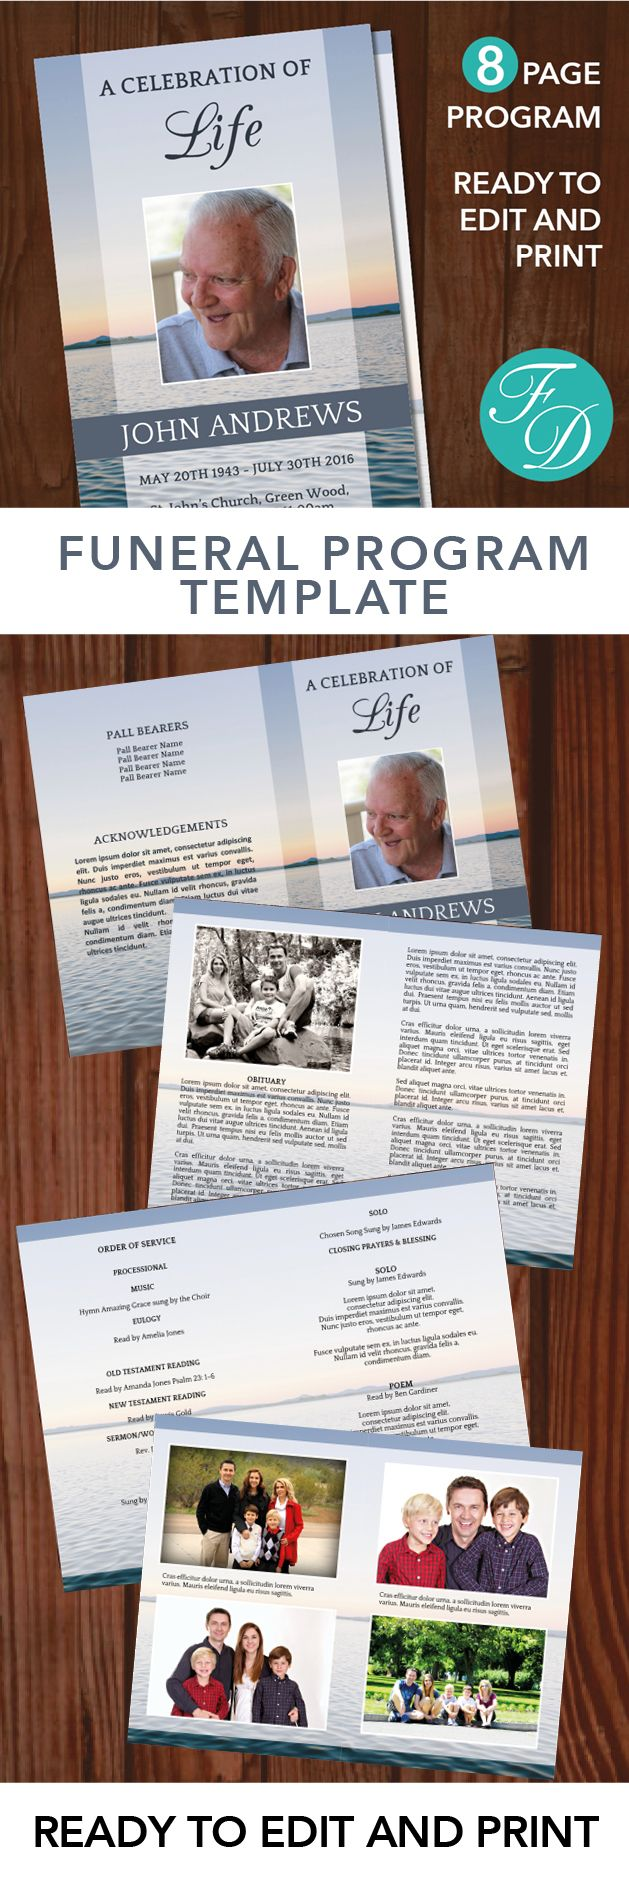 Sunset Printable Funeral program ready to edit & print Simply purchase your funeral templates, download, edit with Microsoft Word and print. #obituarytemplate #memorialprogram #funeralprograms #funeraltemplate #printableprogram #celebrationoflife